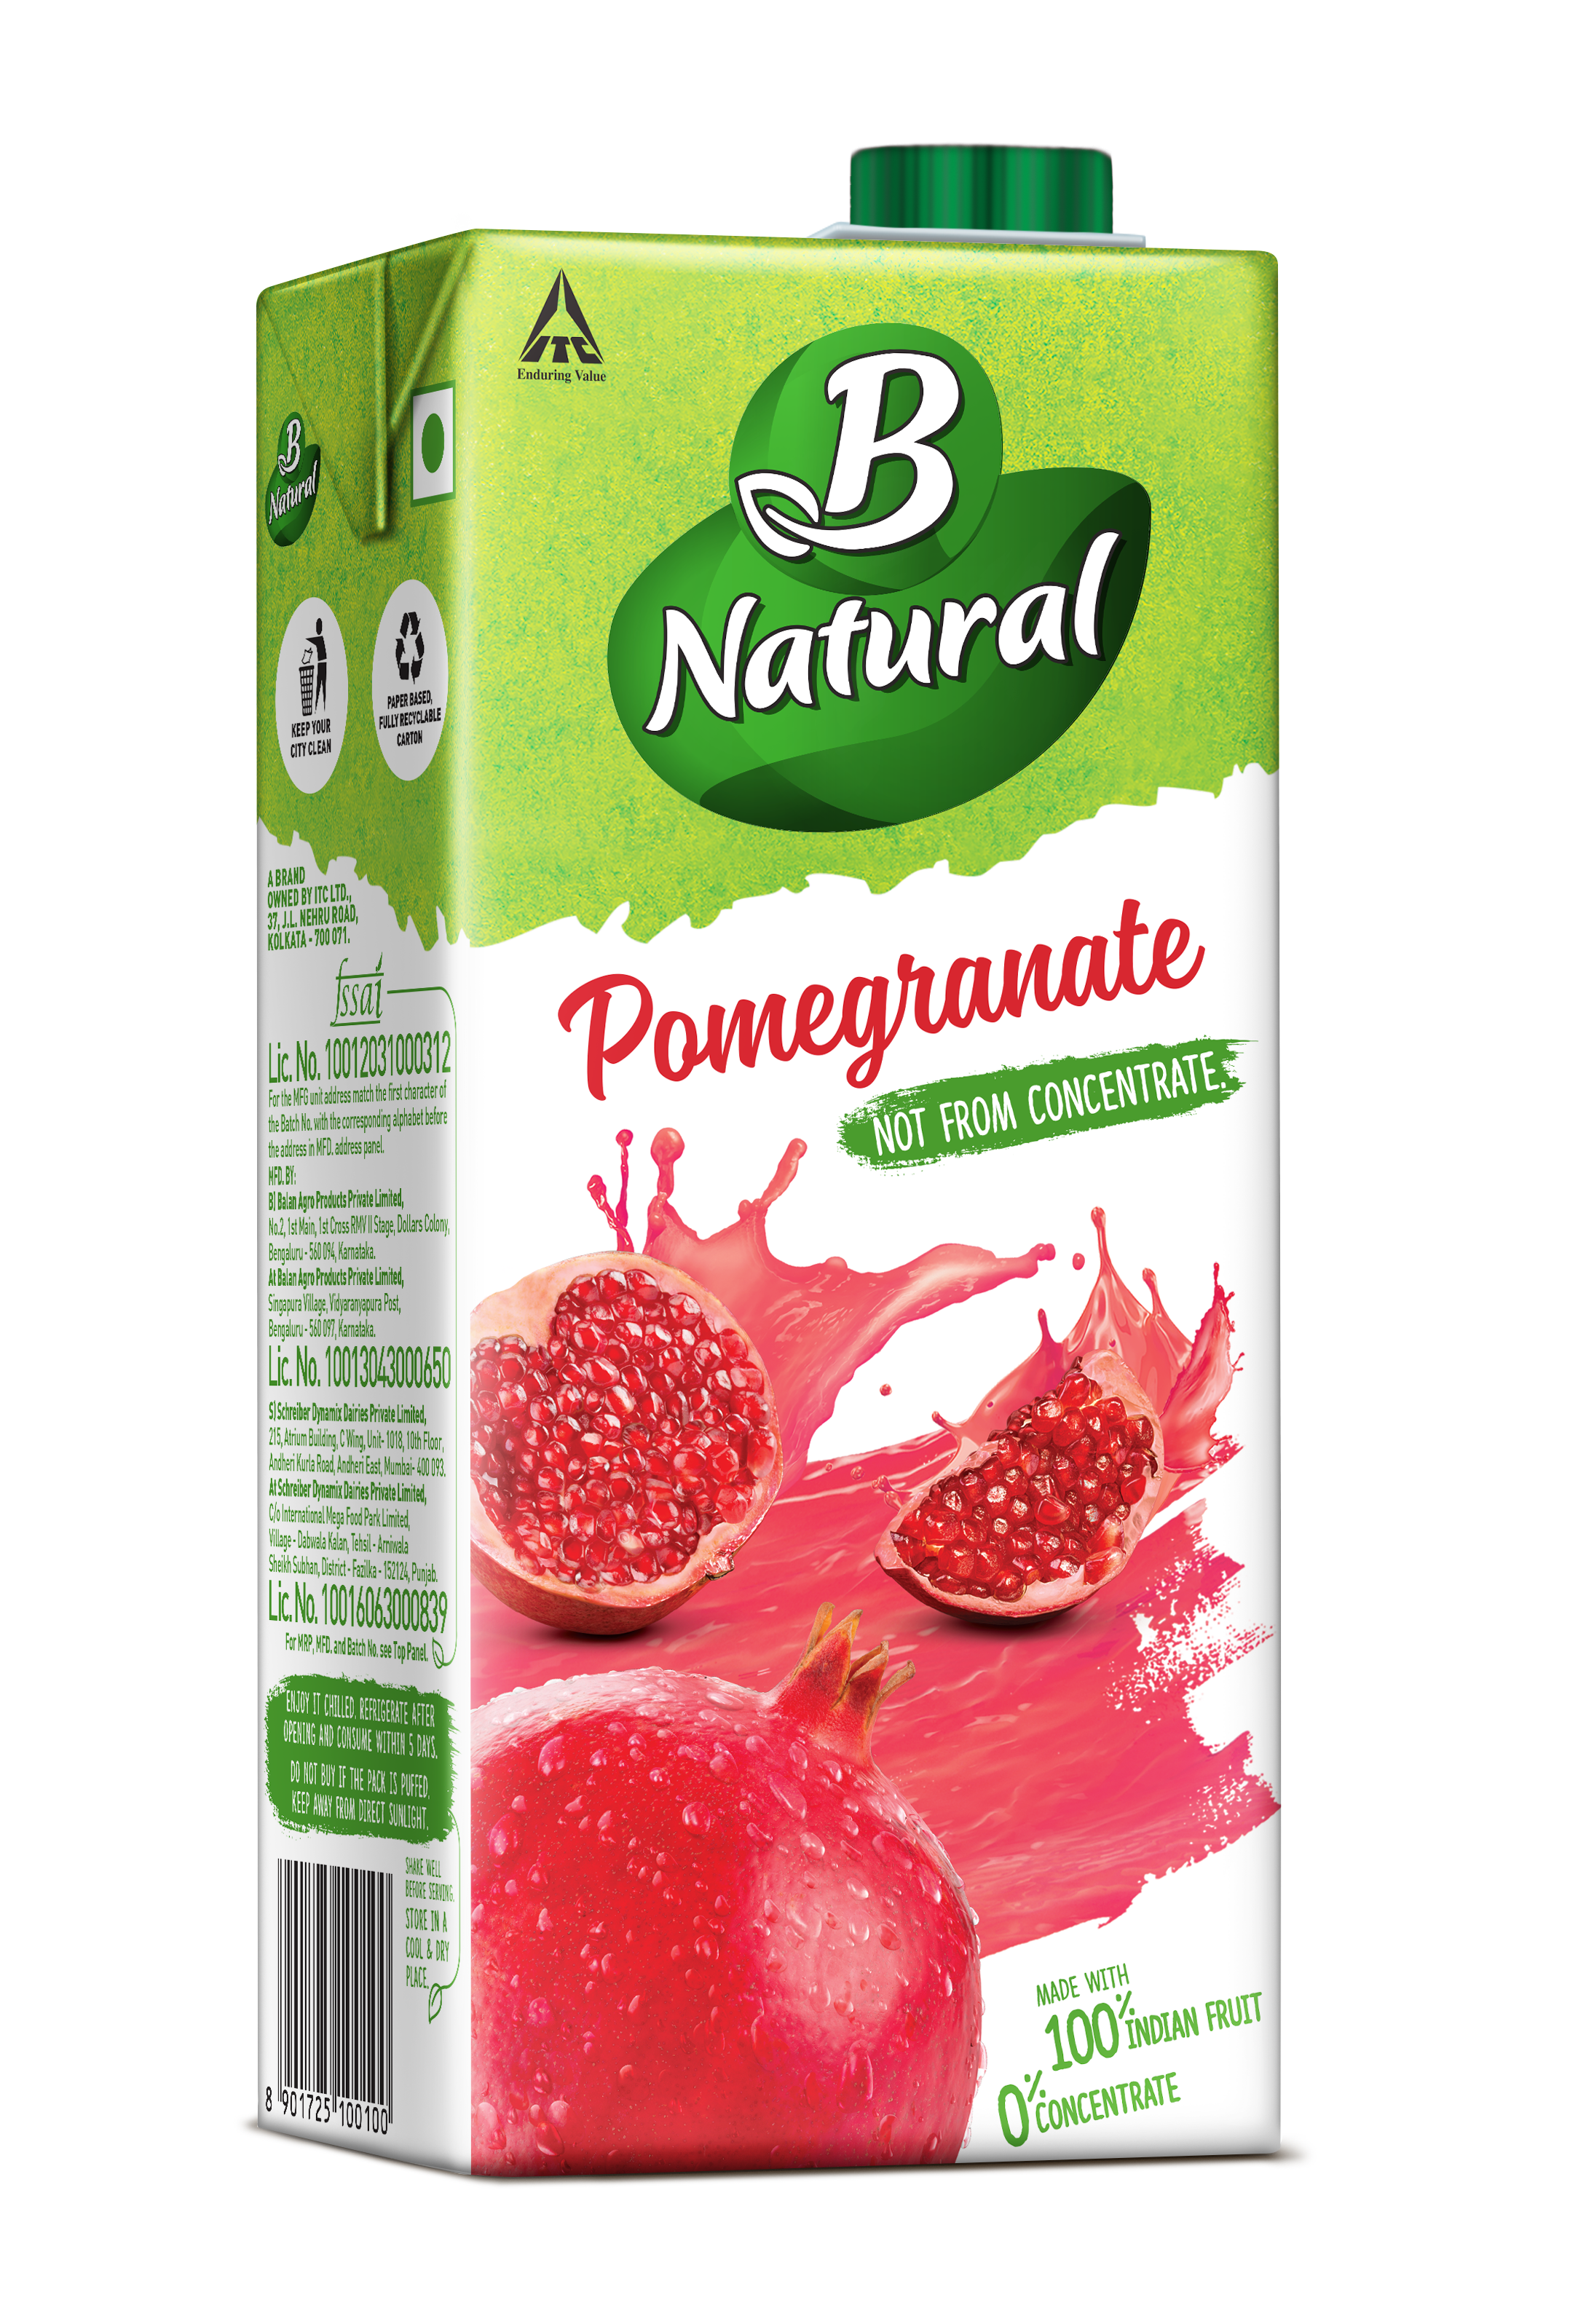 b natural – 100% indian fruit 0% concentrate